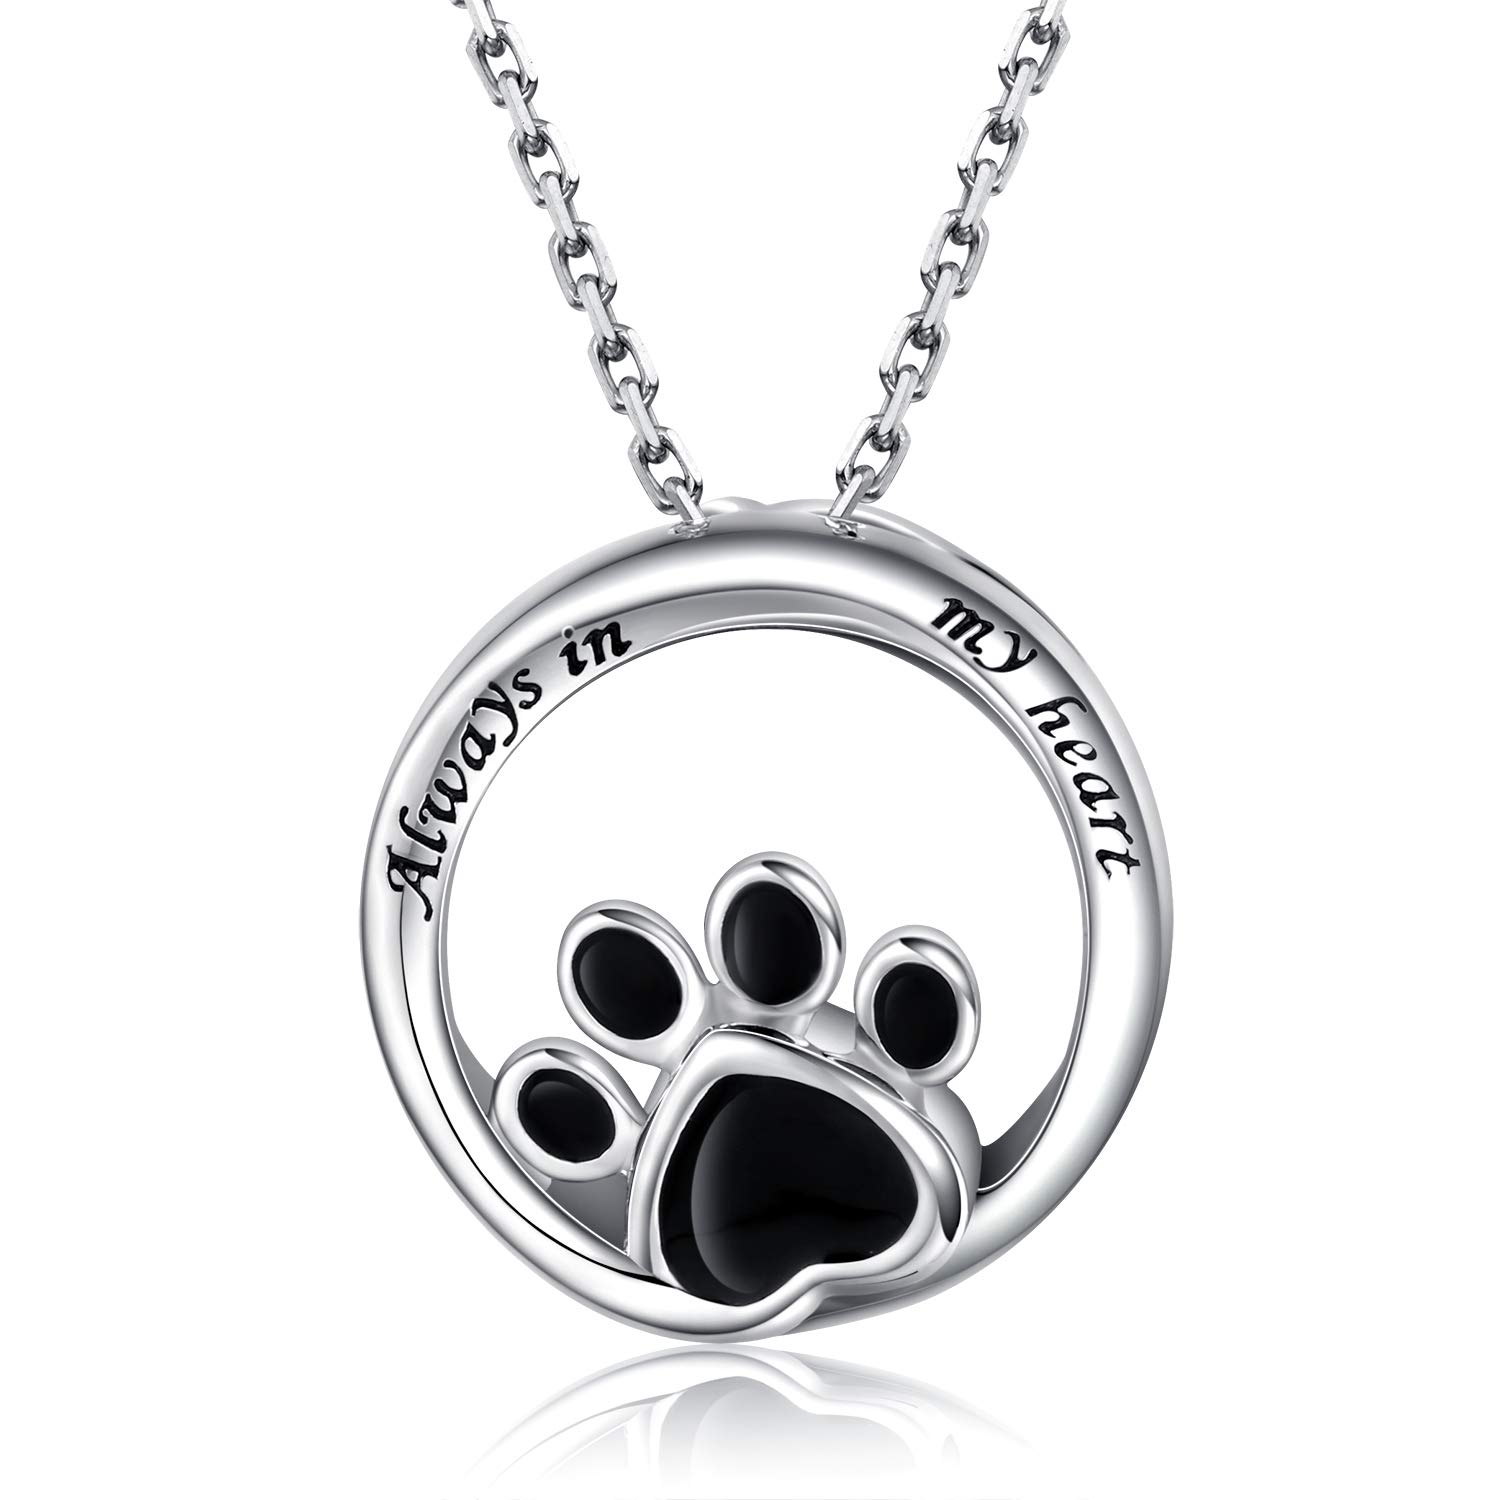 925 Silver Paw Print Urn Pendant Necklace for Cat Dog Pets Ashes - Forever in My Heart Pet Memorial Keepsake Cremation Jewelry by APOTIE